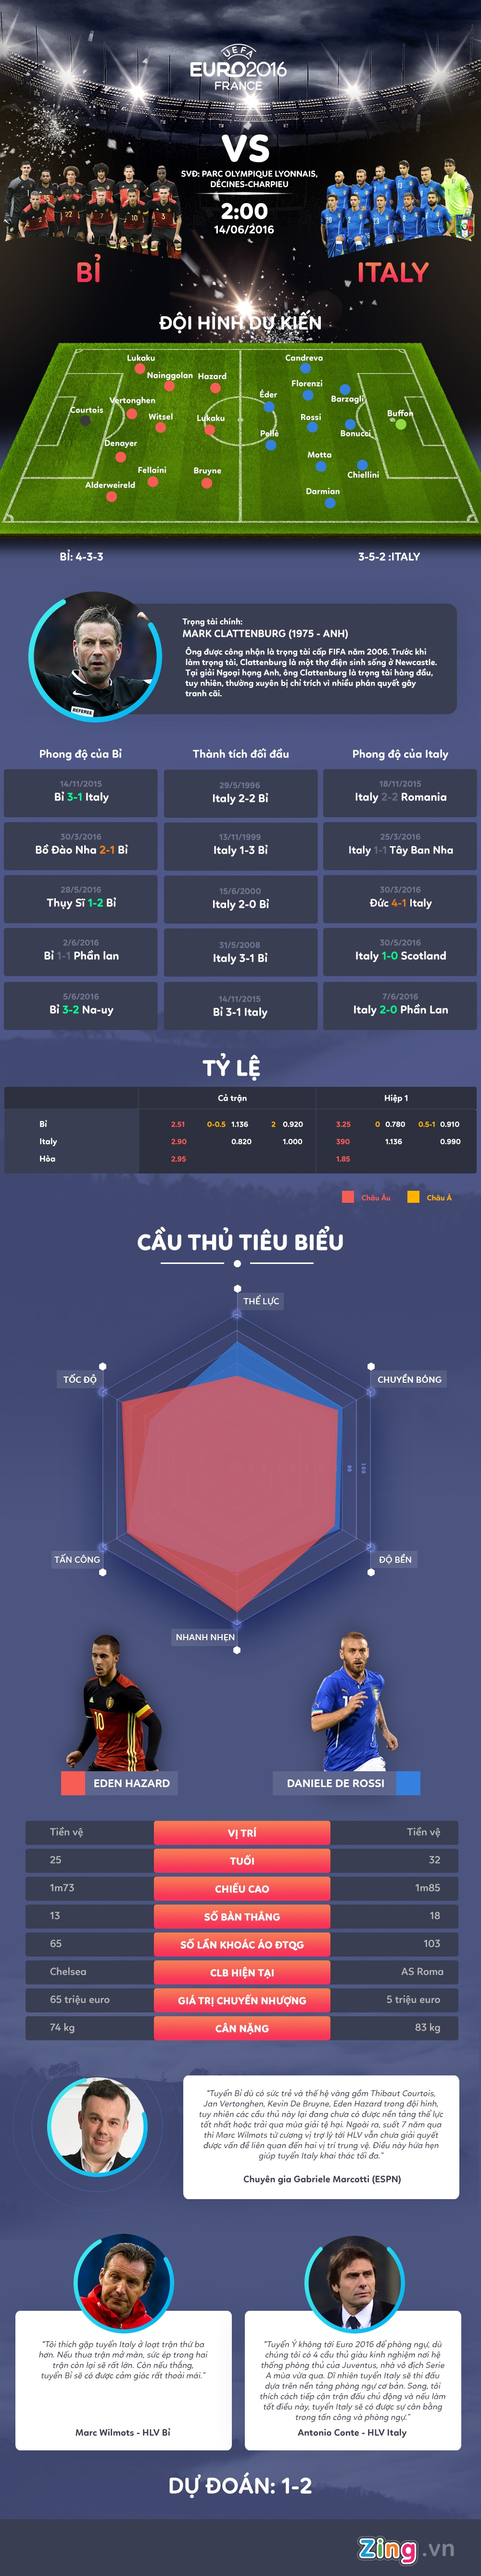 DT Bi vs DT Italy: Giet 'Quy' bang su gia ro hinh anh 1